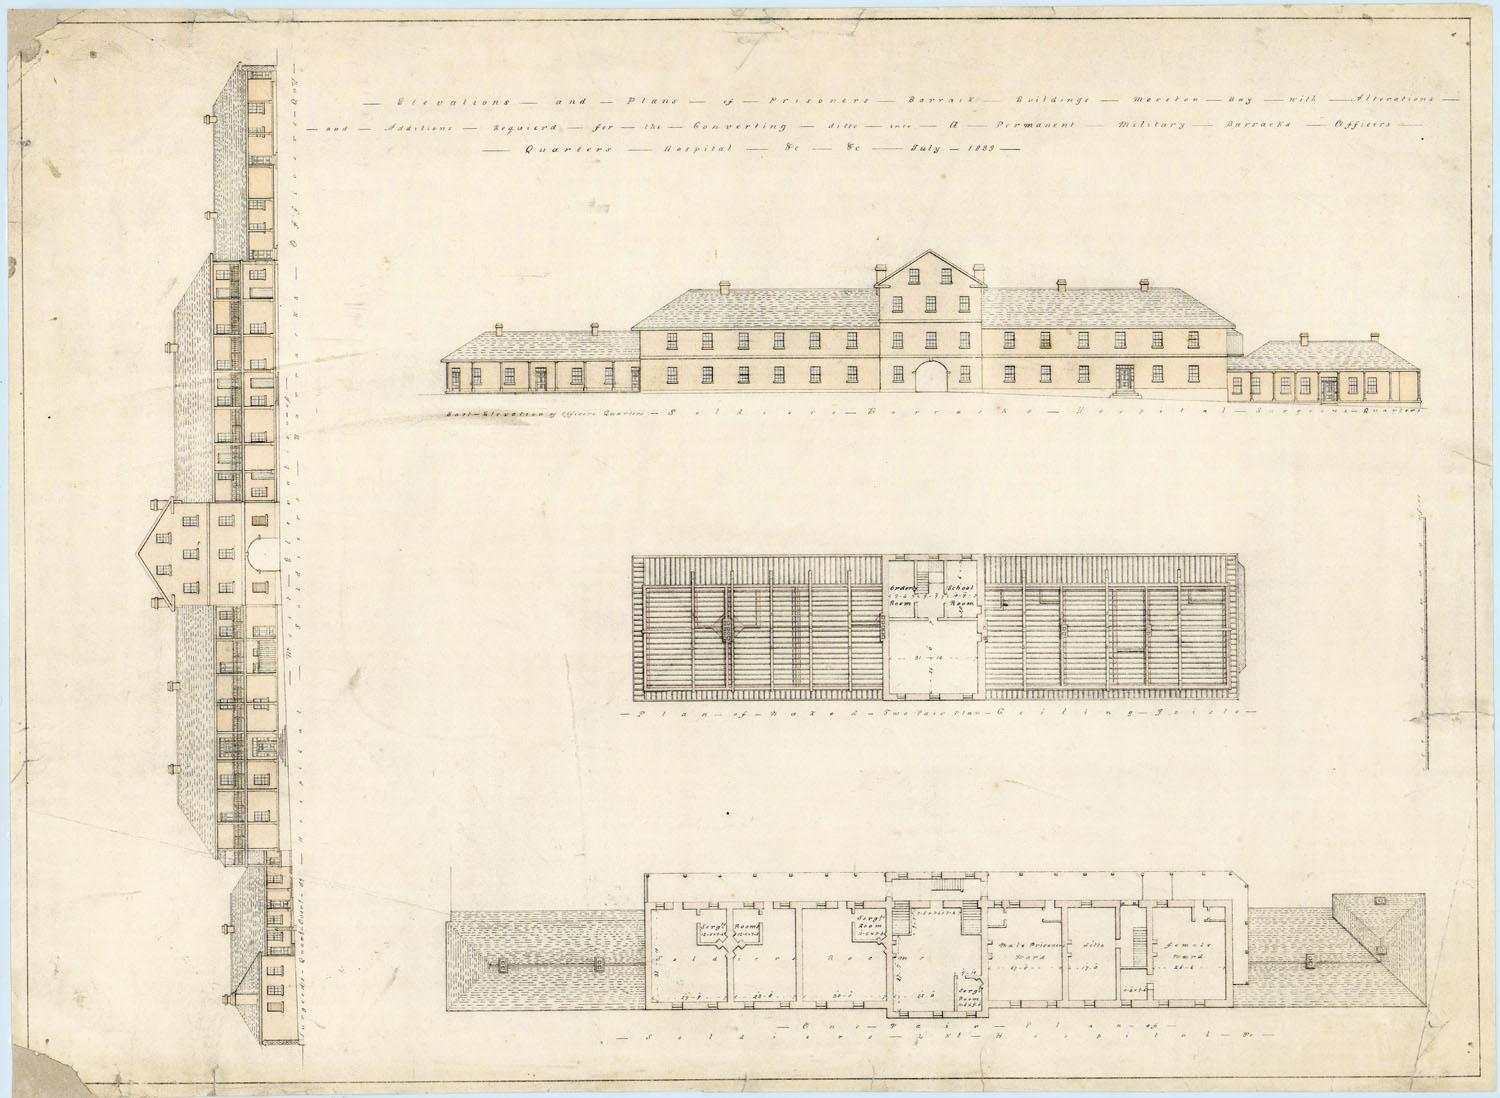 Elevations and plans for conversion of Prisoners' Barrack